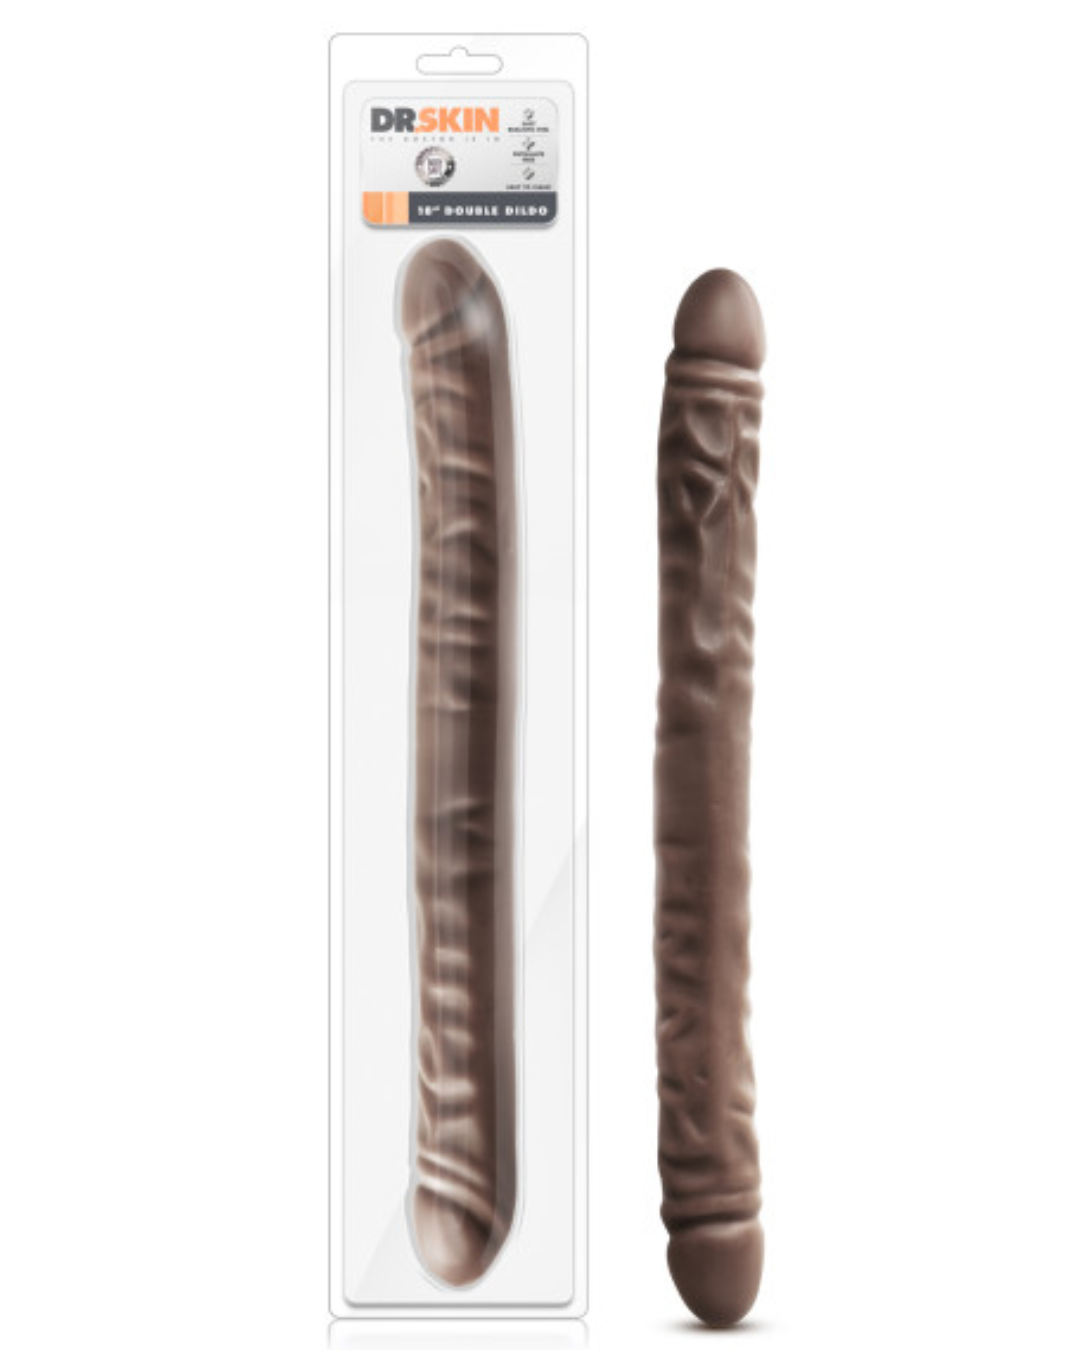 Dr. Skin 18 Inch Realistic Double Dildo - Chocolate package